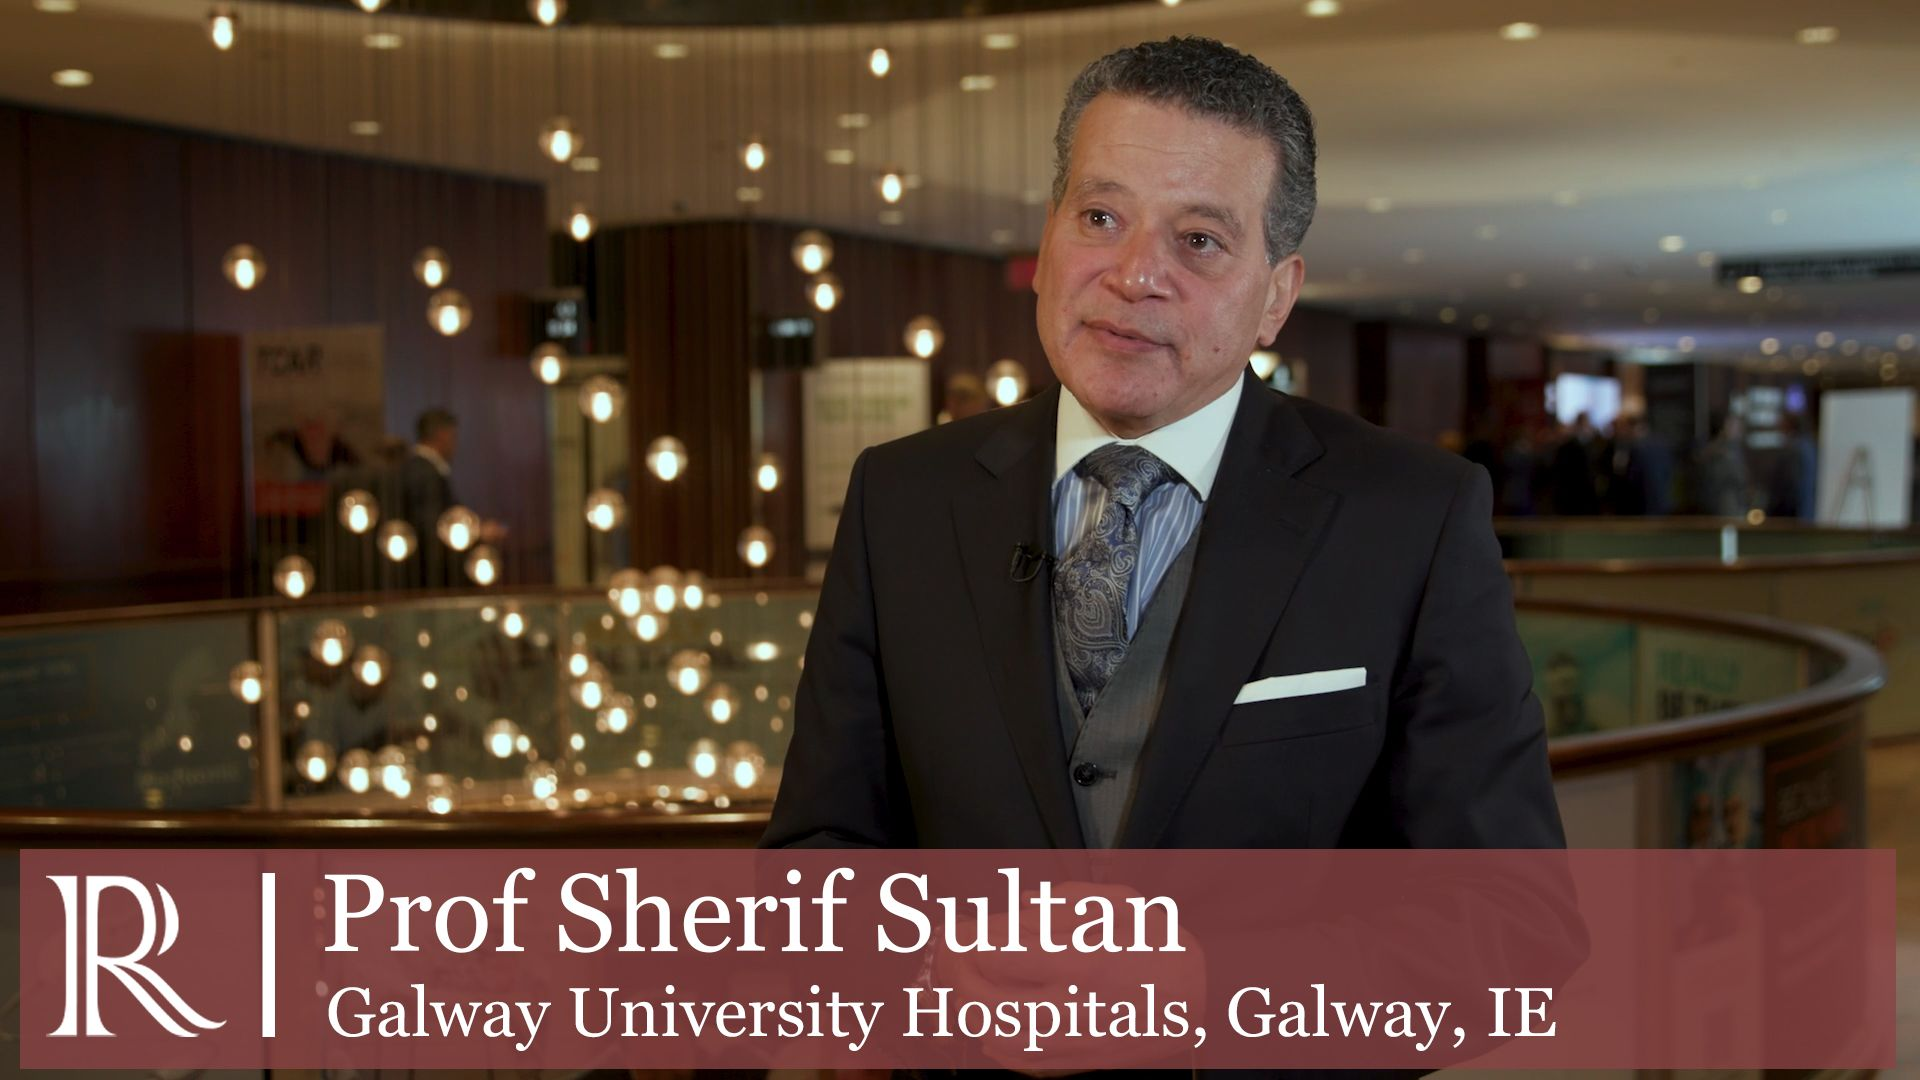 VEITHsymposium™ 2019: Update on the Arterial Assist Device® — Prof Sherif Sultan